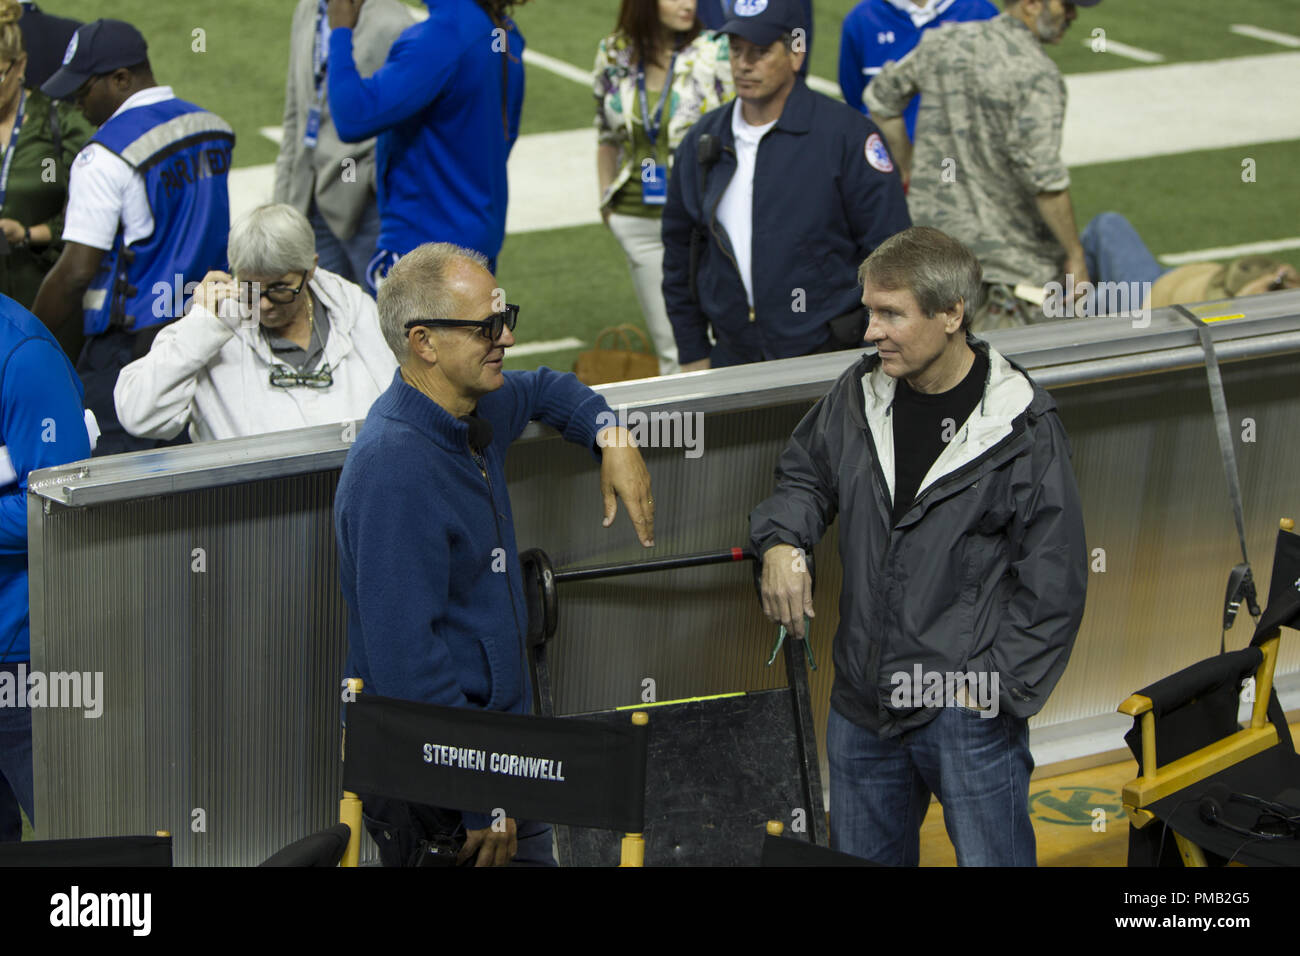 Producer Stephen Cornwell and book author Ben Fountain on the set of TriStar Pictures' BILLY LYNN'S LONG HALFTIME WALK. - Stock Image